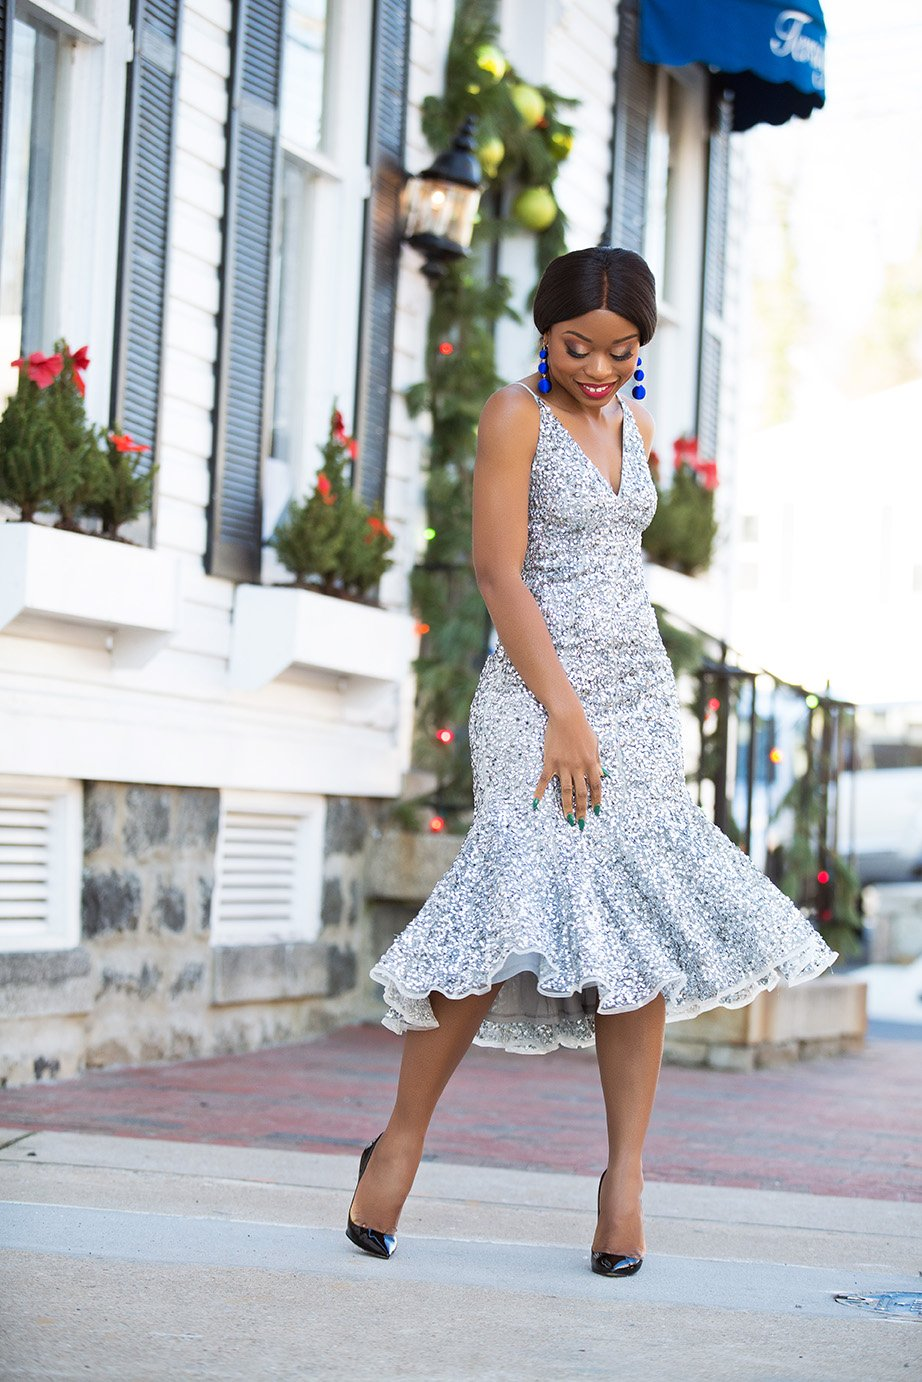 stella-adewunmi-in-sequins-dress-for-holiday-party